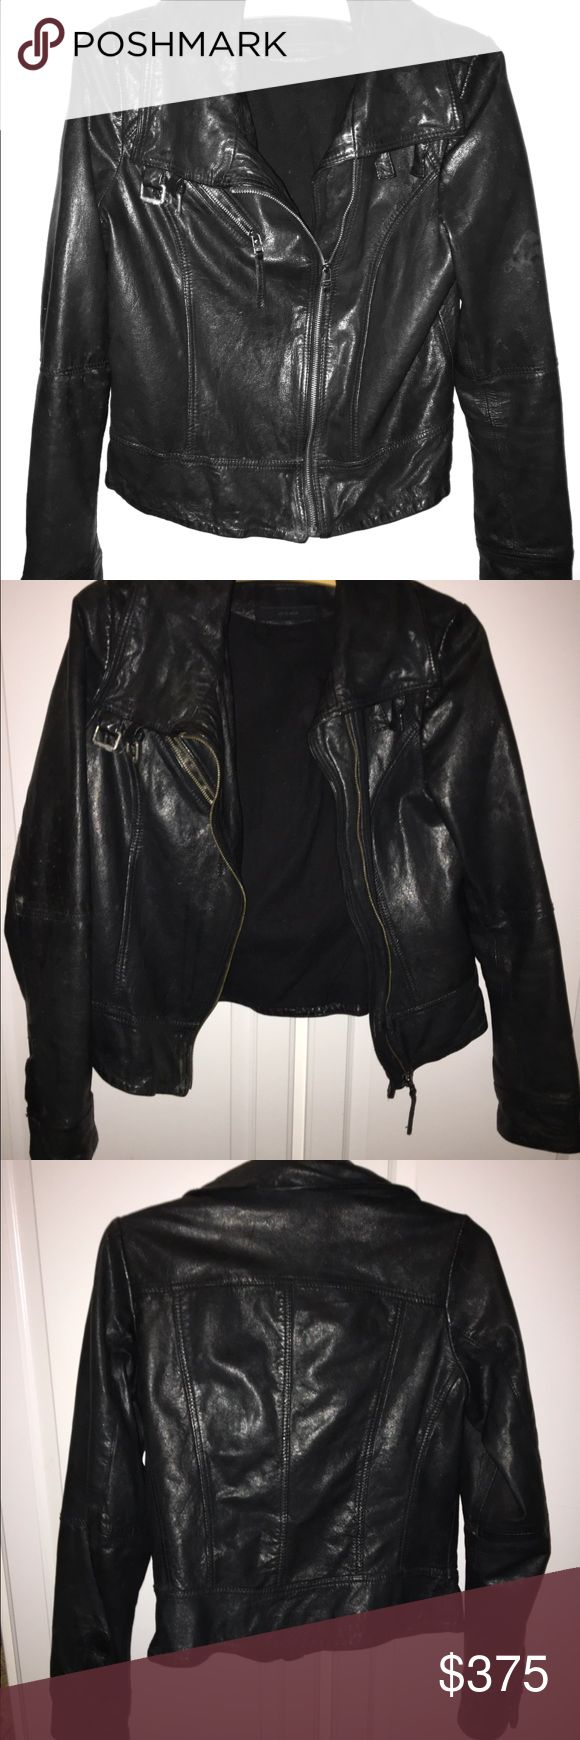 Genuine ALL SAINTS Black Leather Jacket Genuine ALL SAINTS Spitafields Black Leather jacket. Off center cross zipper and zippered front breast pocket. Tailored fit. Double snaps at end of sleeves. Double buckles at neck for optional full closure. Leather has slight sheen.✨ Label says size 10 but fits EXACTLY like a size 6 (USA). Worn once for promotional purposes.                                               Reasonable offers only please. All Saints Jackets & Coats